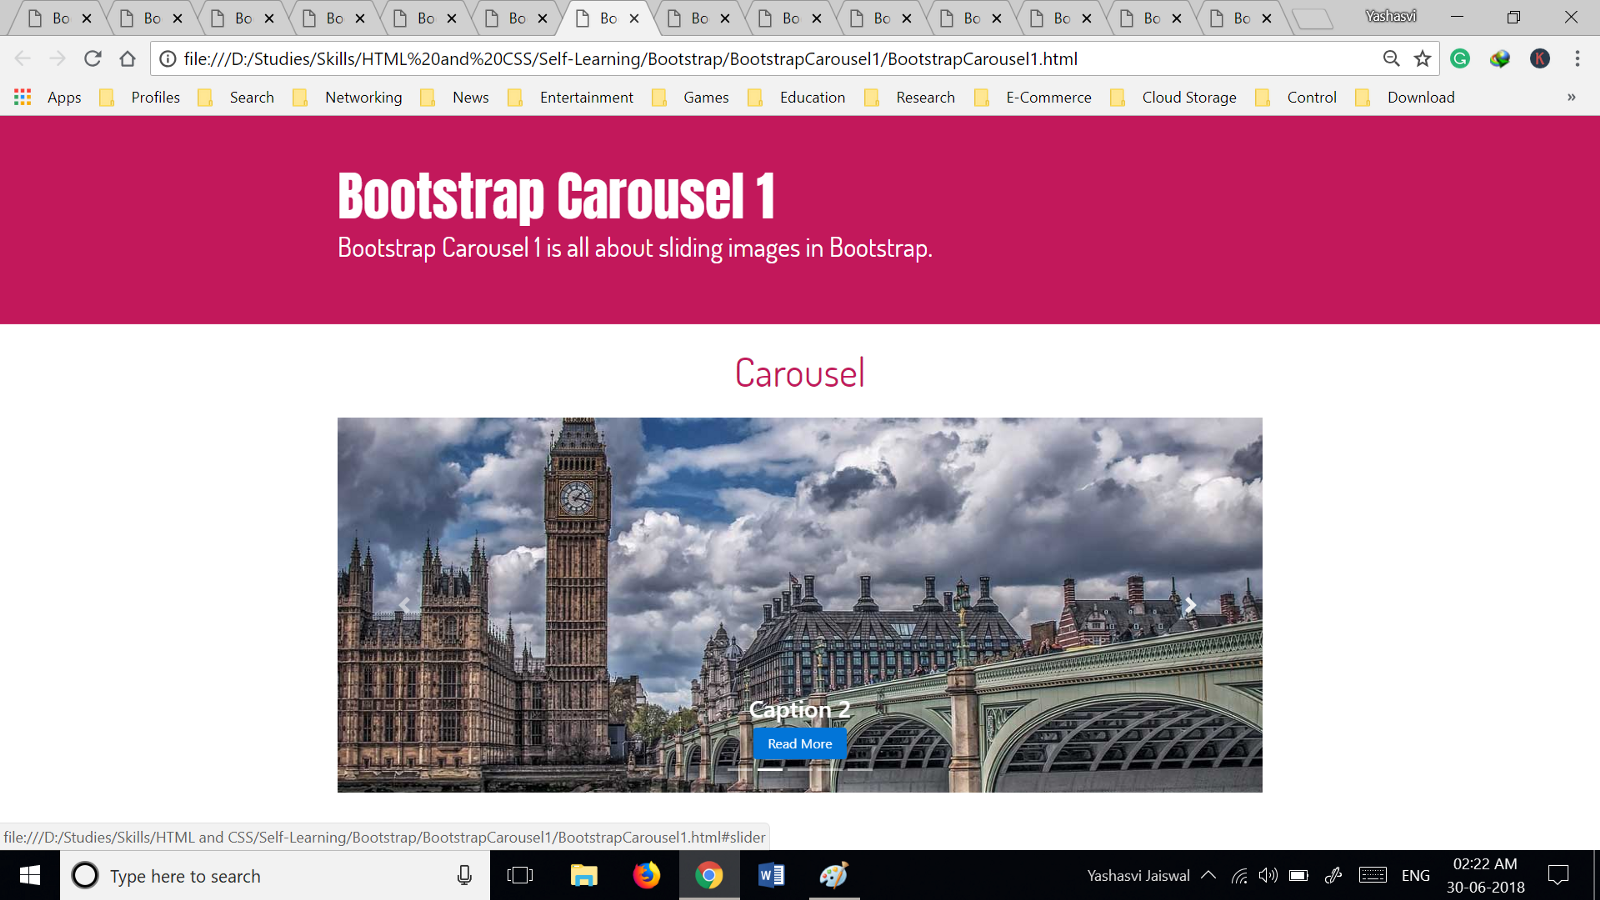 Revisiting Bootstrap in the Summers - By